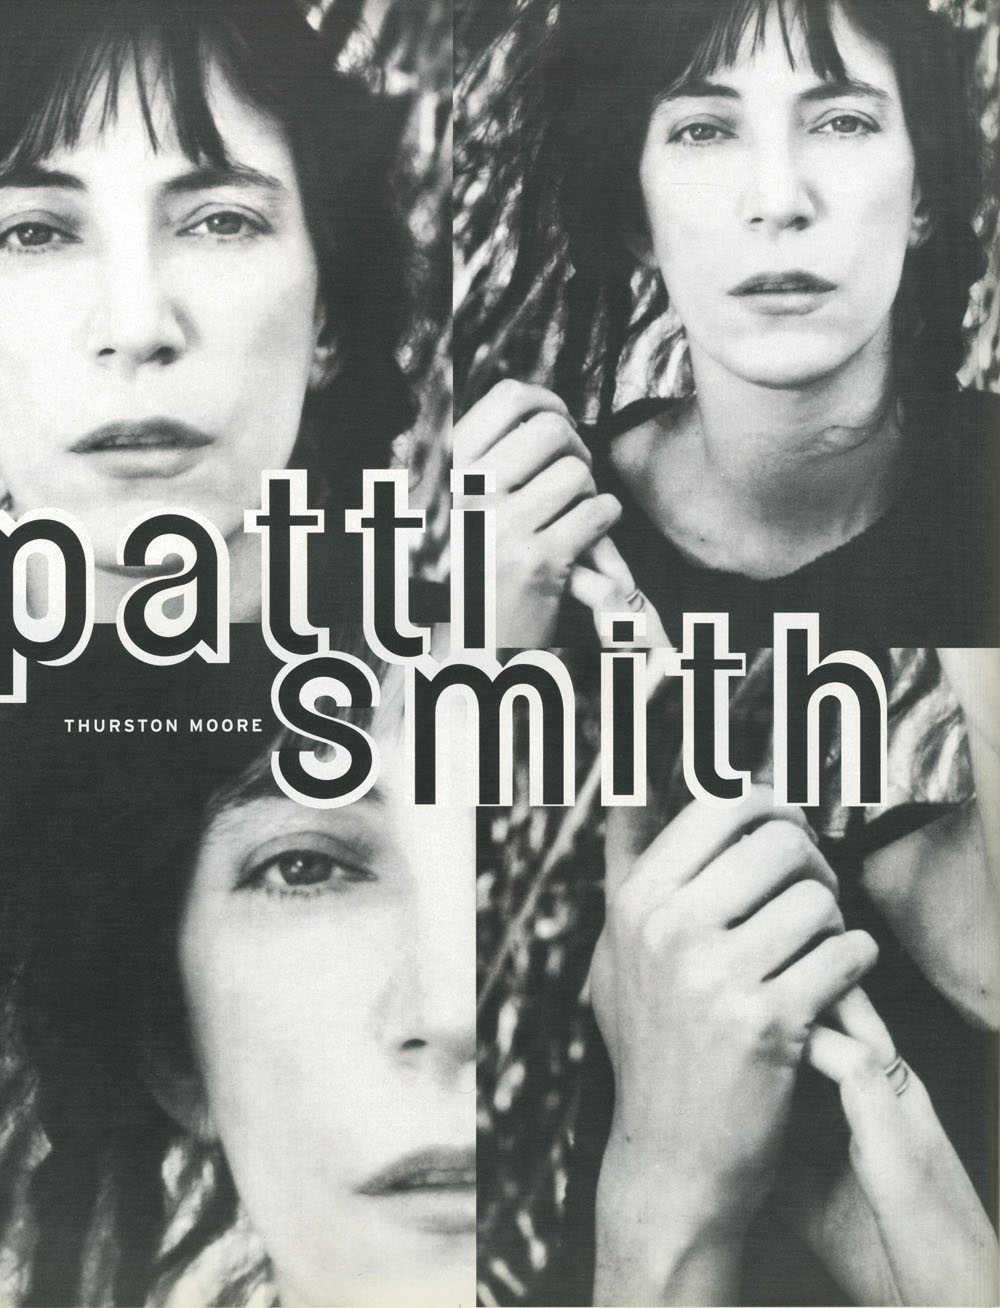 Patti smith dating history